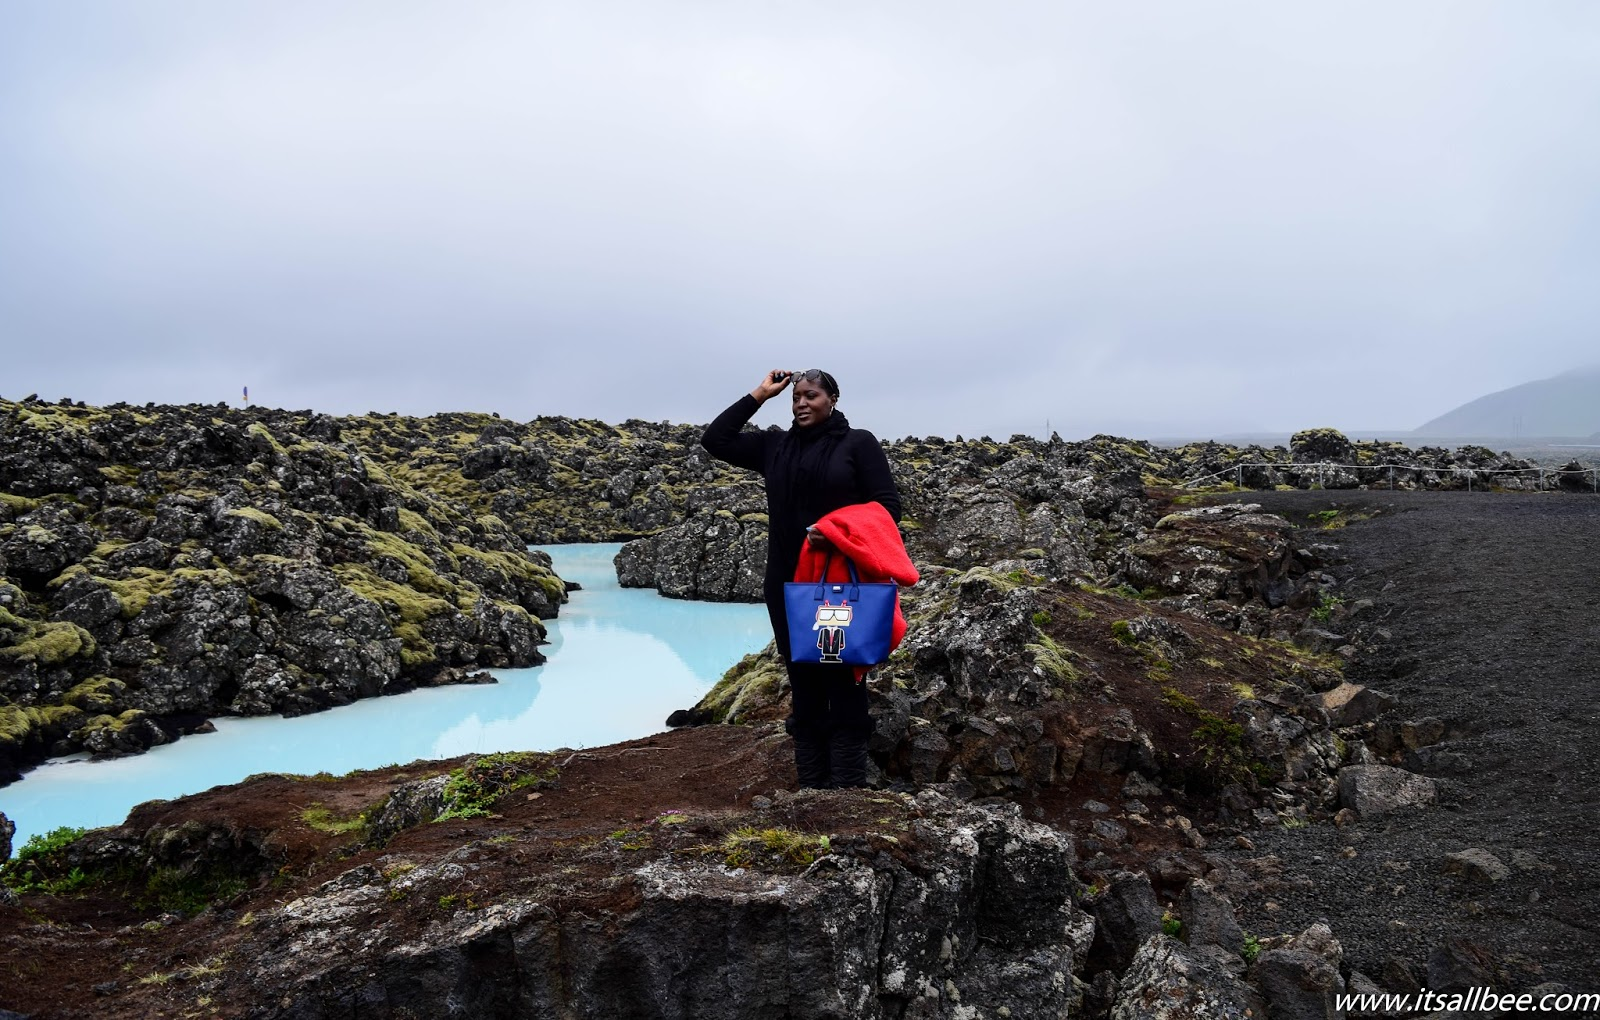 Visiting The Blue Lagoon In Iceland + Tips - Blue Lagoon Location, Admission fee and how to get there! #itsallbee #traveltips #adventure #spas #hotspring